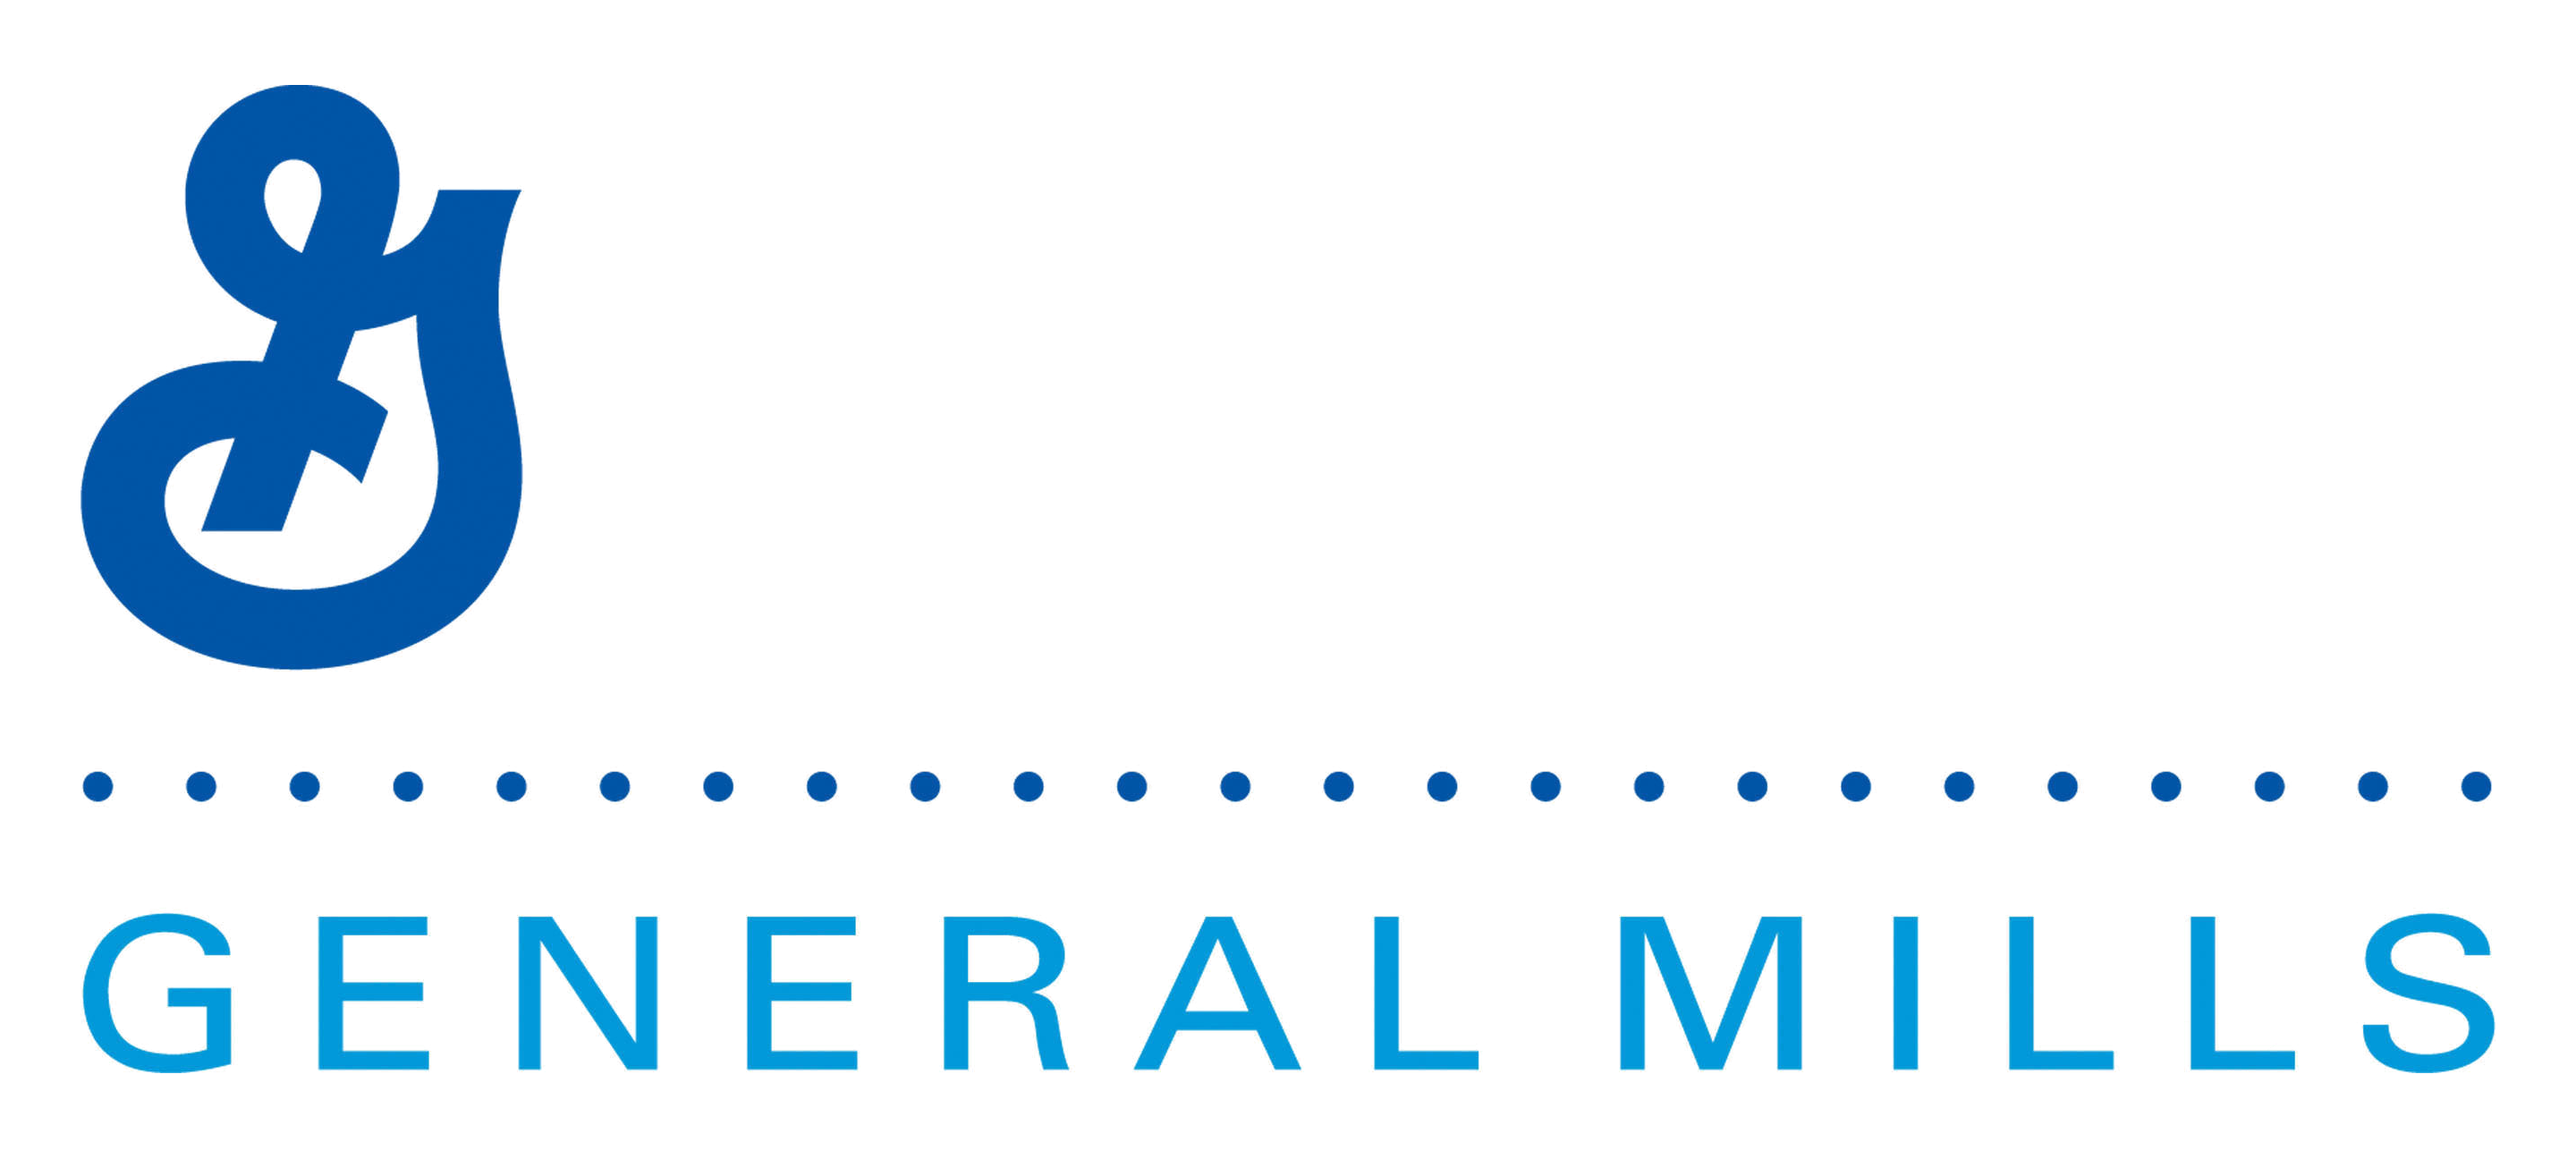 Download General Mills Logo Png Image For Free General Mills Png Images Logos